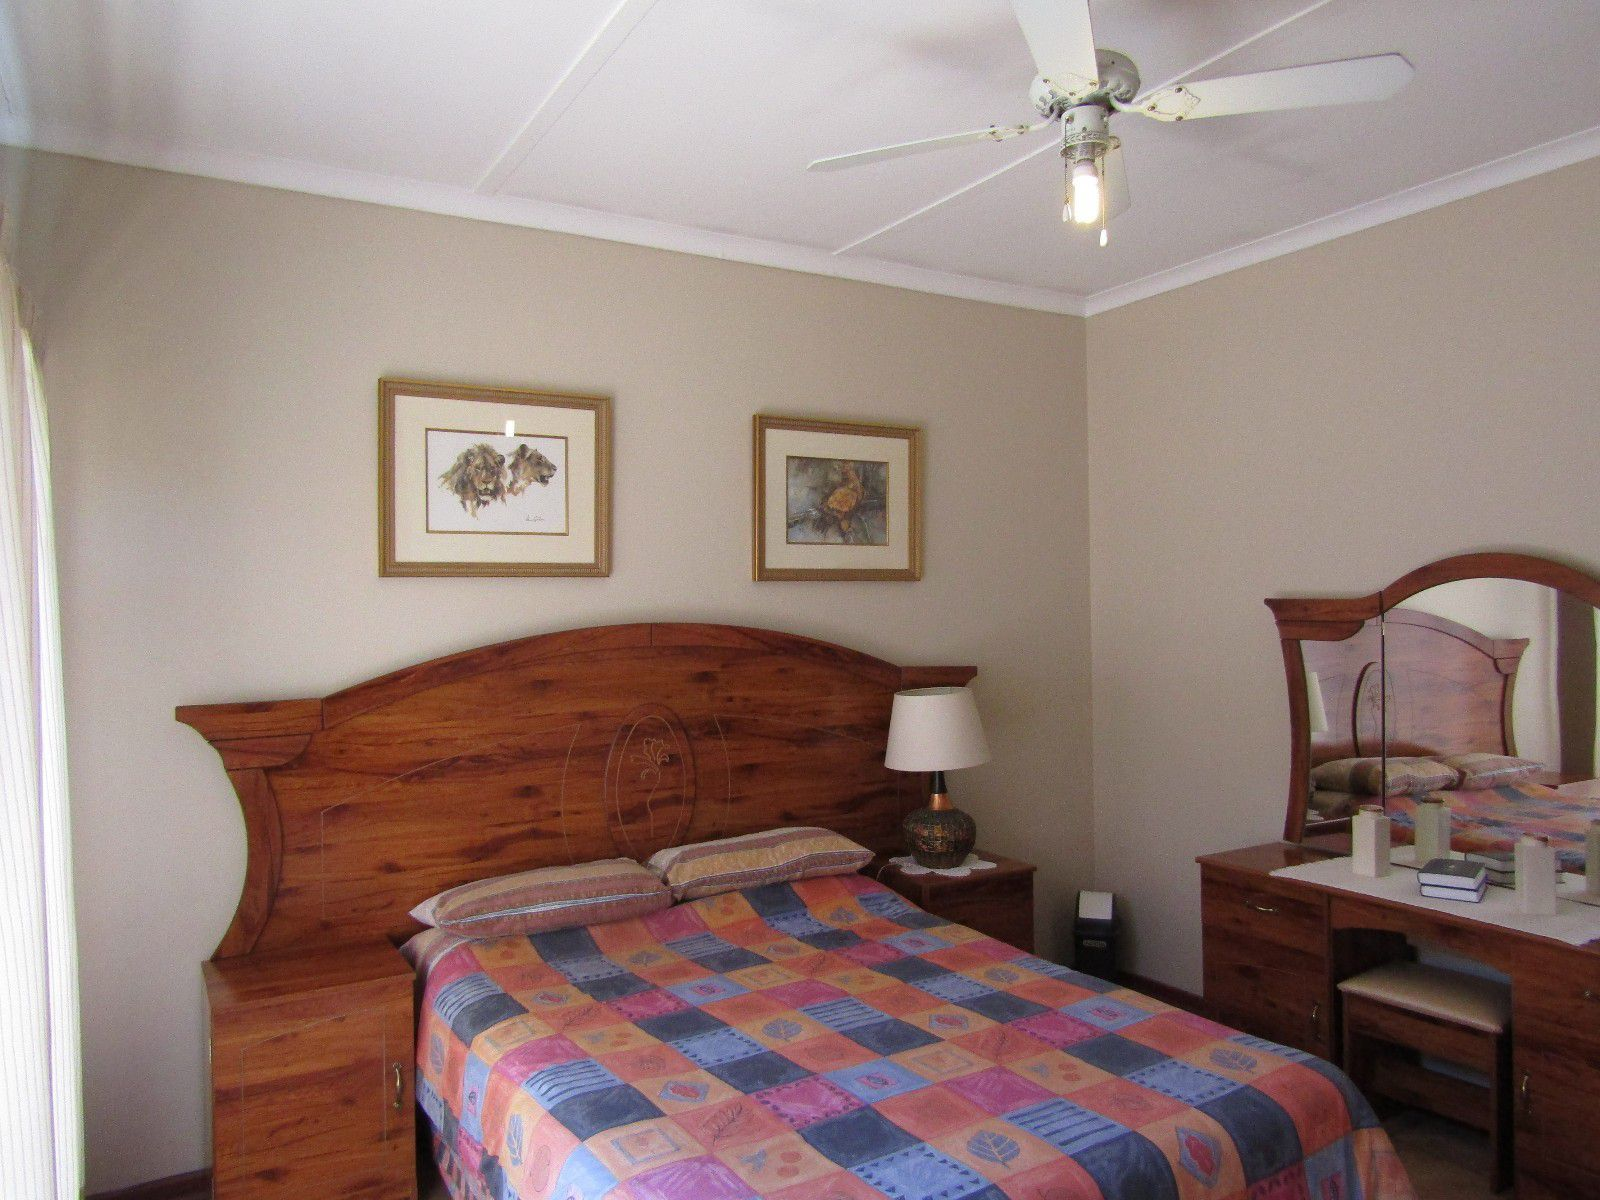 Potchefstroom Central property for sale. Ref No: 13444543. Picture no 16